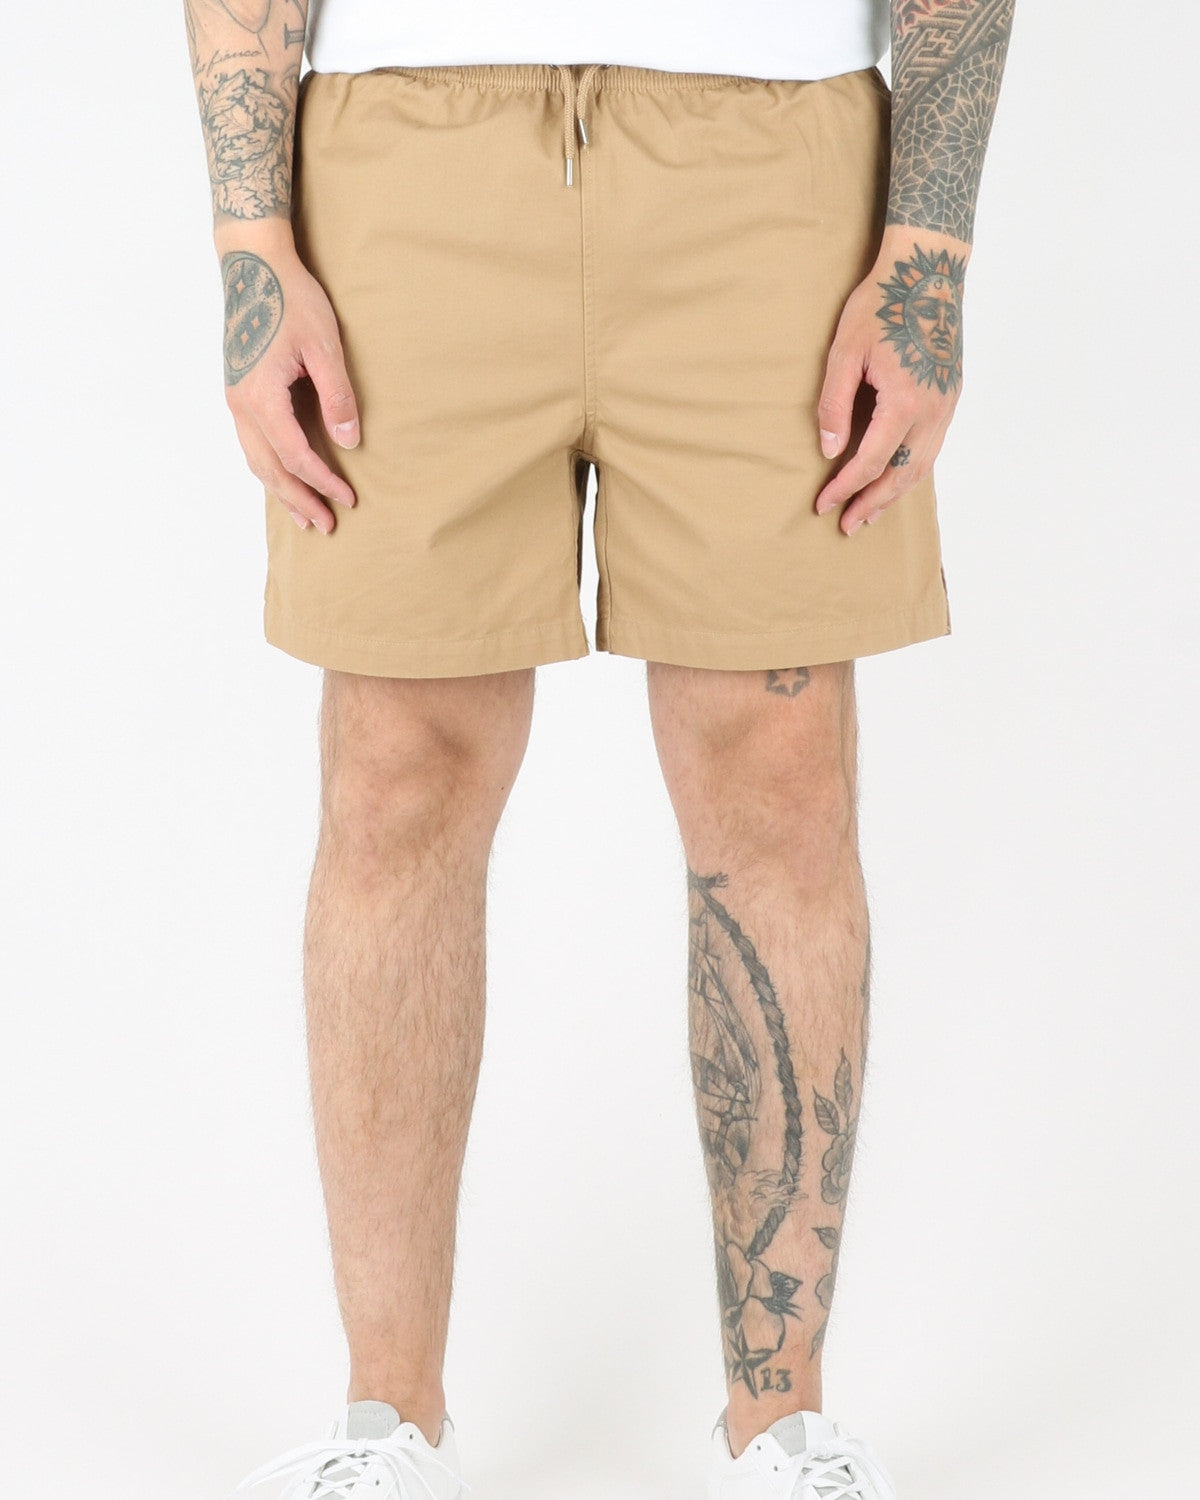 wac we are copenhagen_rivaldo shorts_khaki_view_1_2